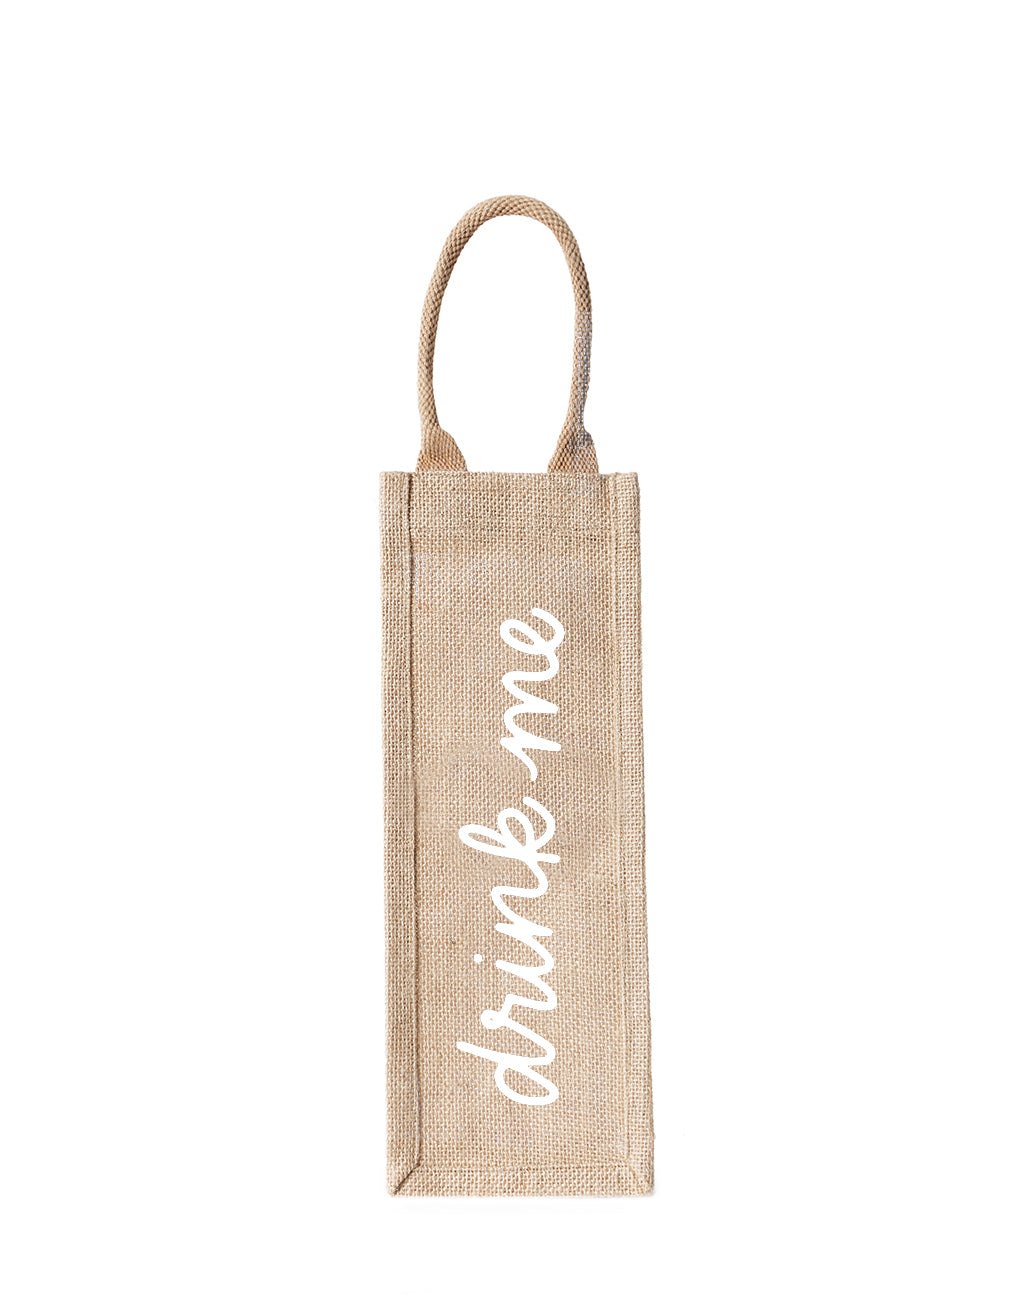 Drink Me Reusable Wine Tote In White Font | The Little Market